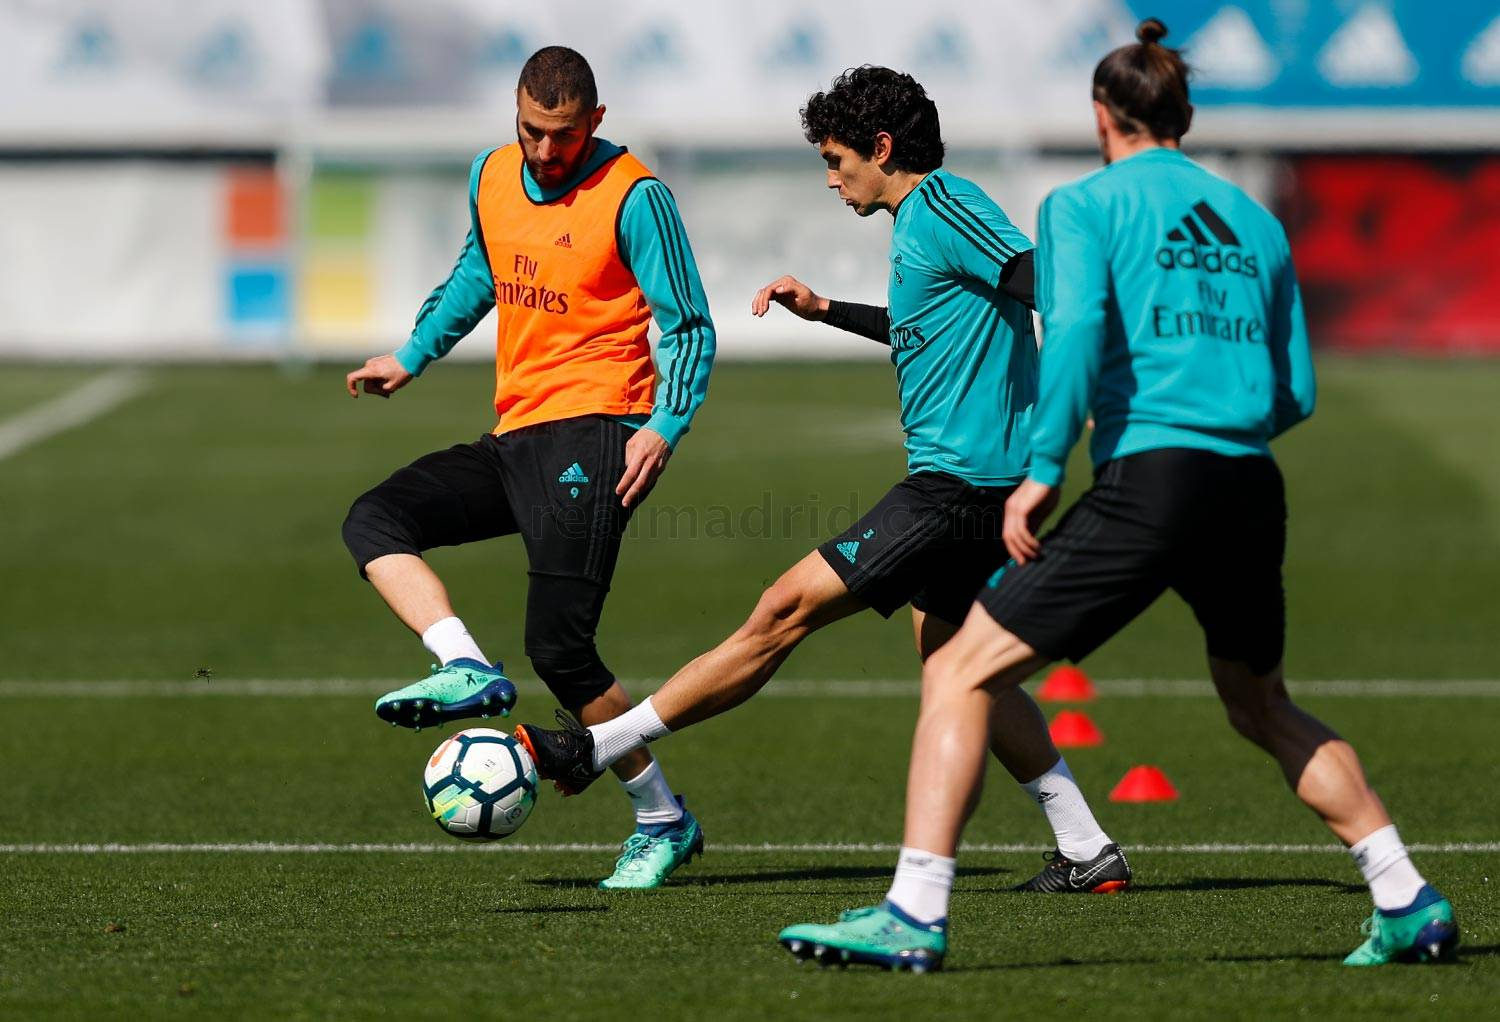 Real Madrid - Entrenamiento del Real Madrid - 17-04-2018